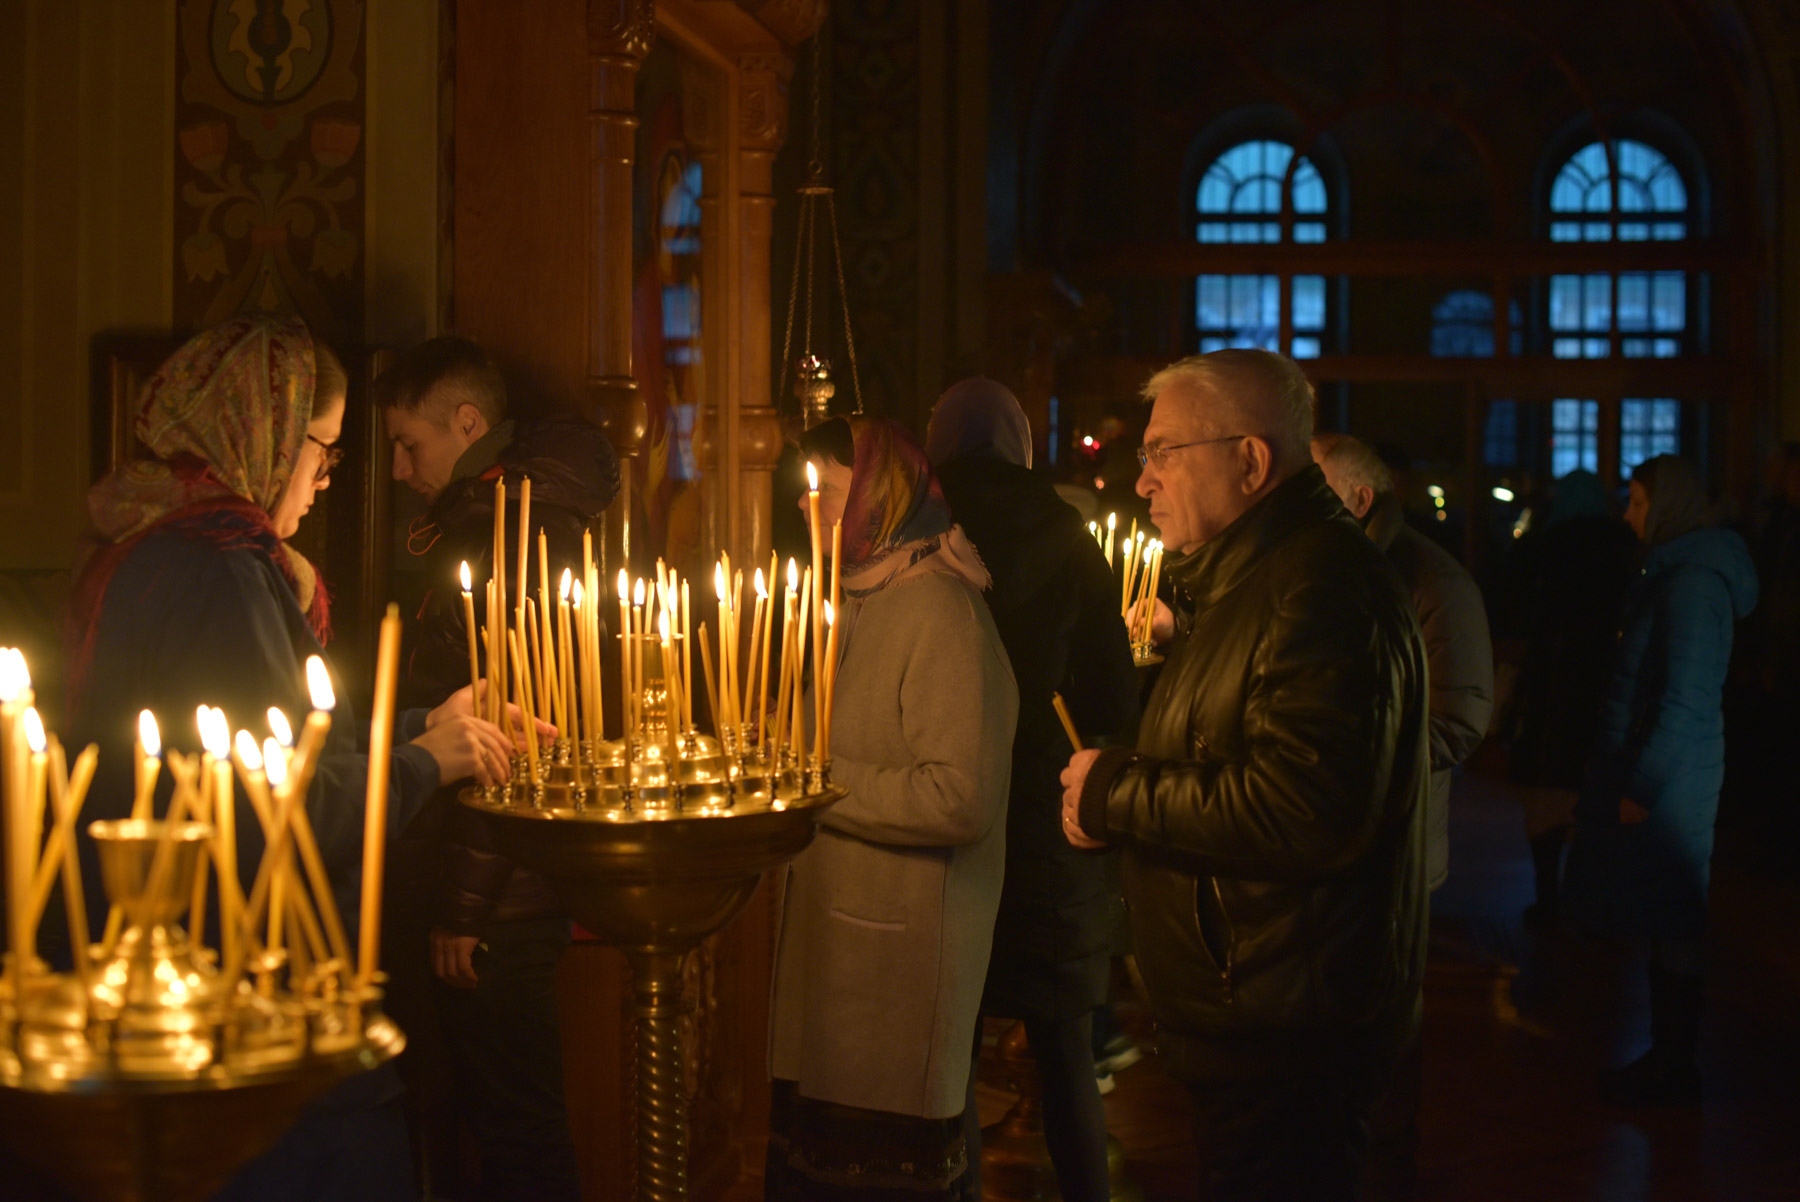 photos of orthodox christmas 0003 1